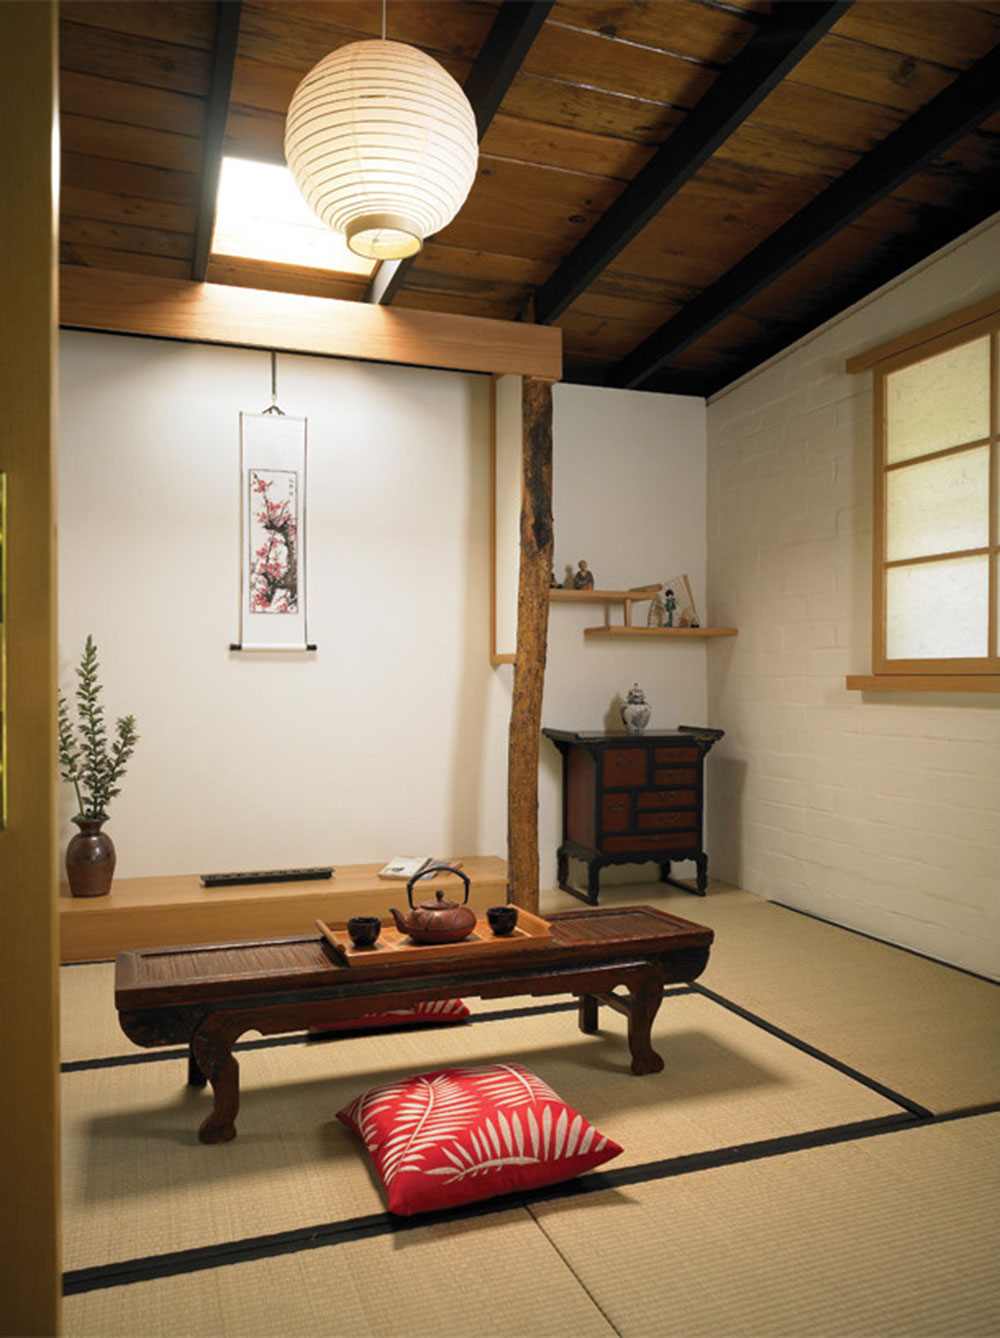 Meditation Room Ideas 7 meditation room ideas